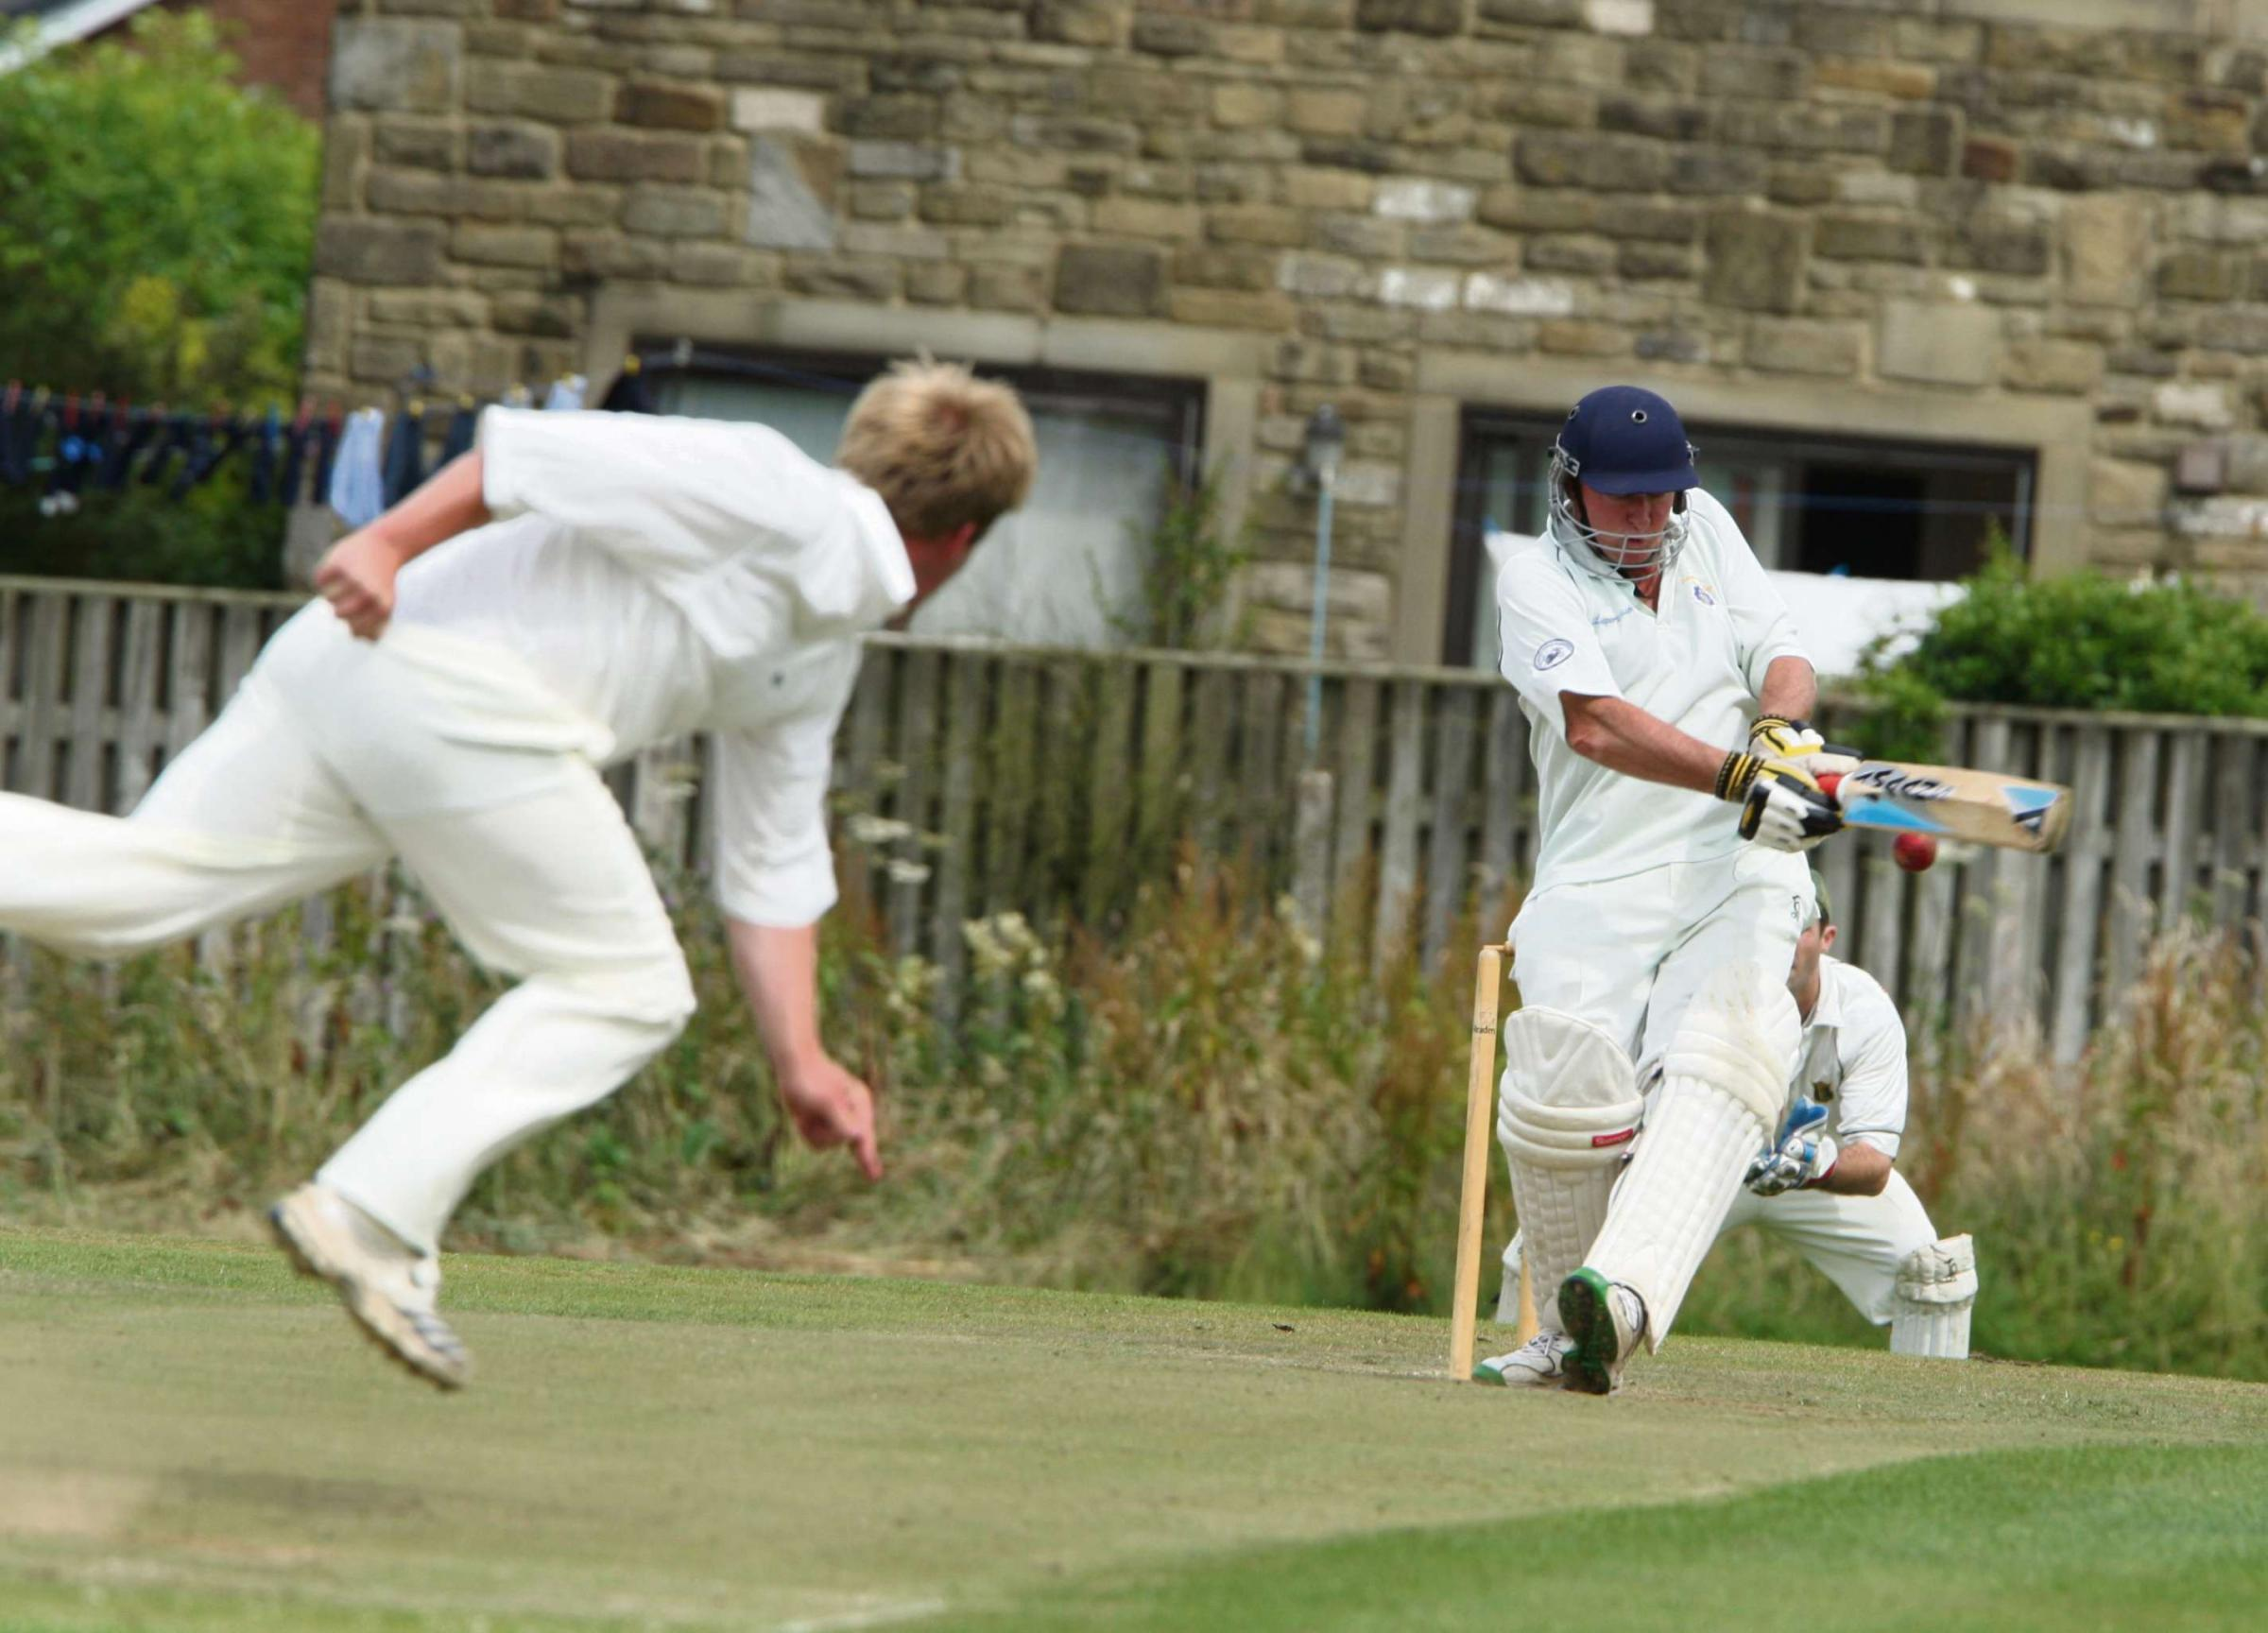 Craven League mourning death of Filkin